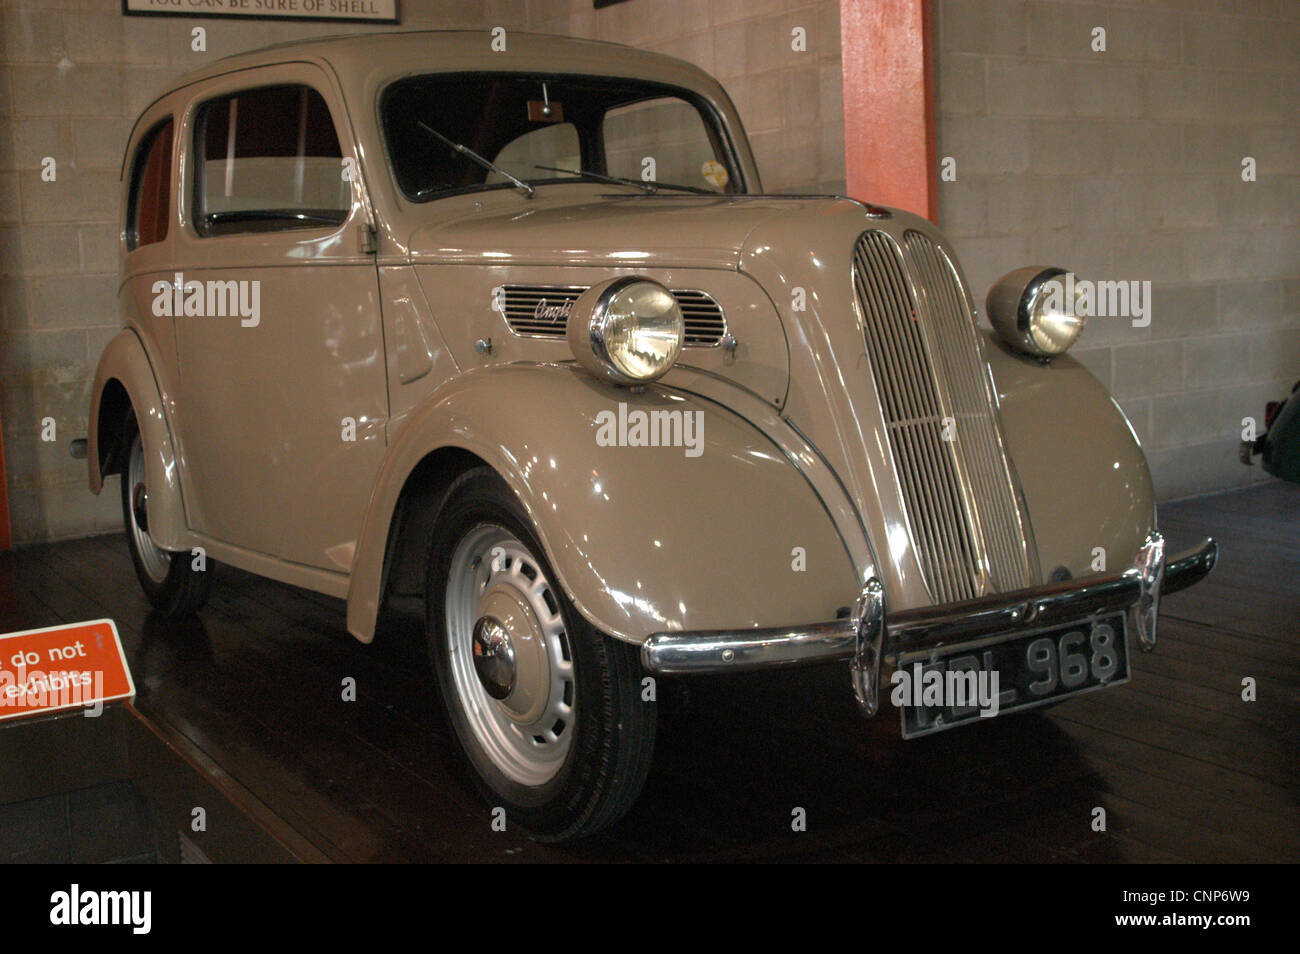 Ford anglia e494a 1949 produced by ford motor co ltd for Ford motor company stock